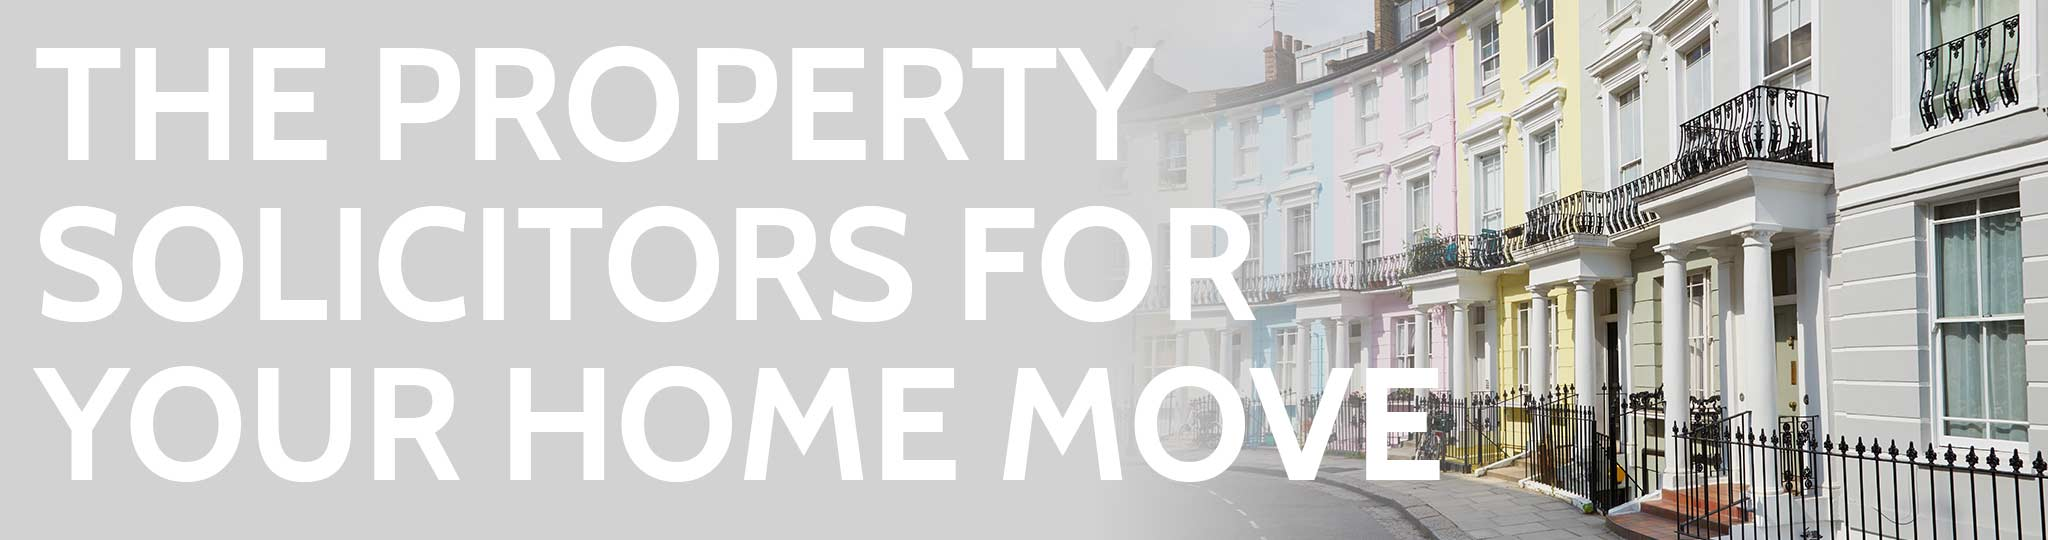 Property solicitors for your home sale purchase or remortgage